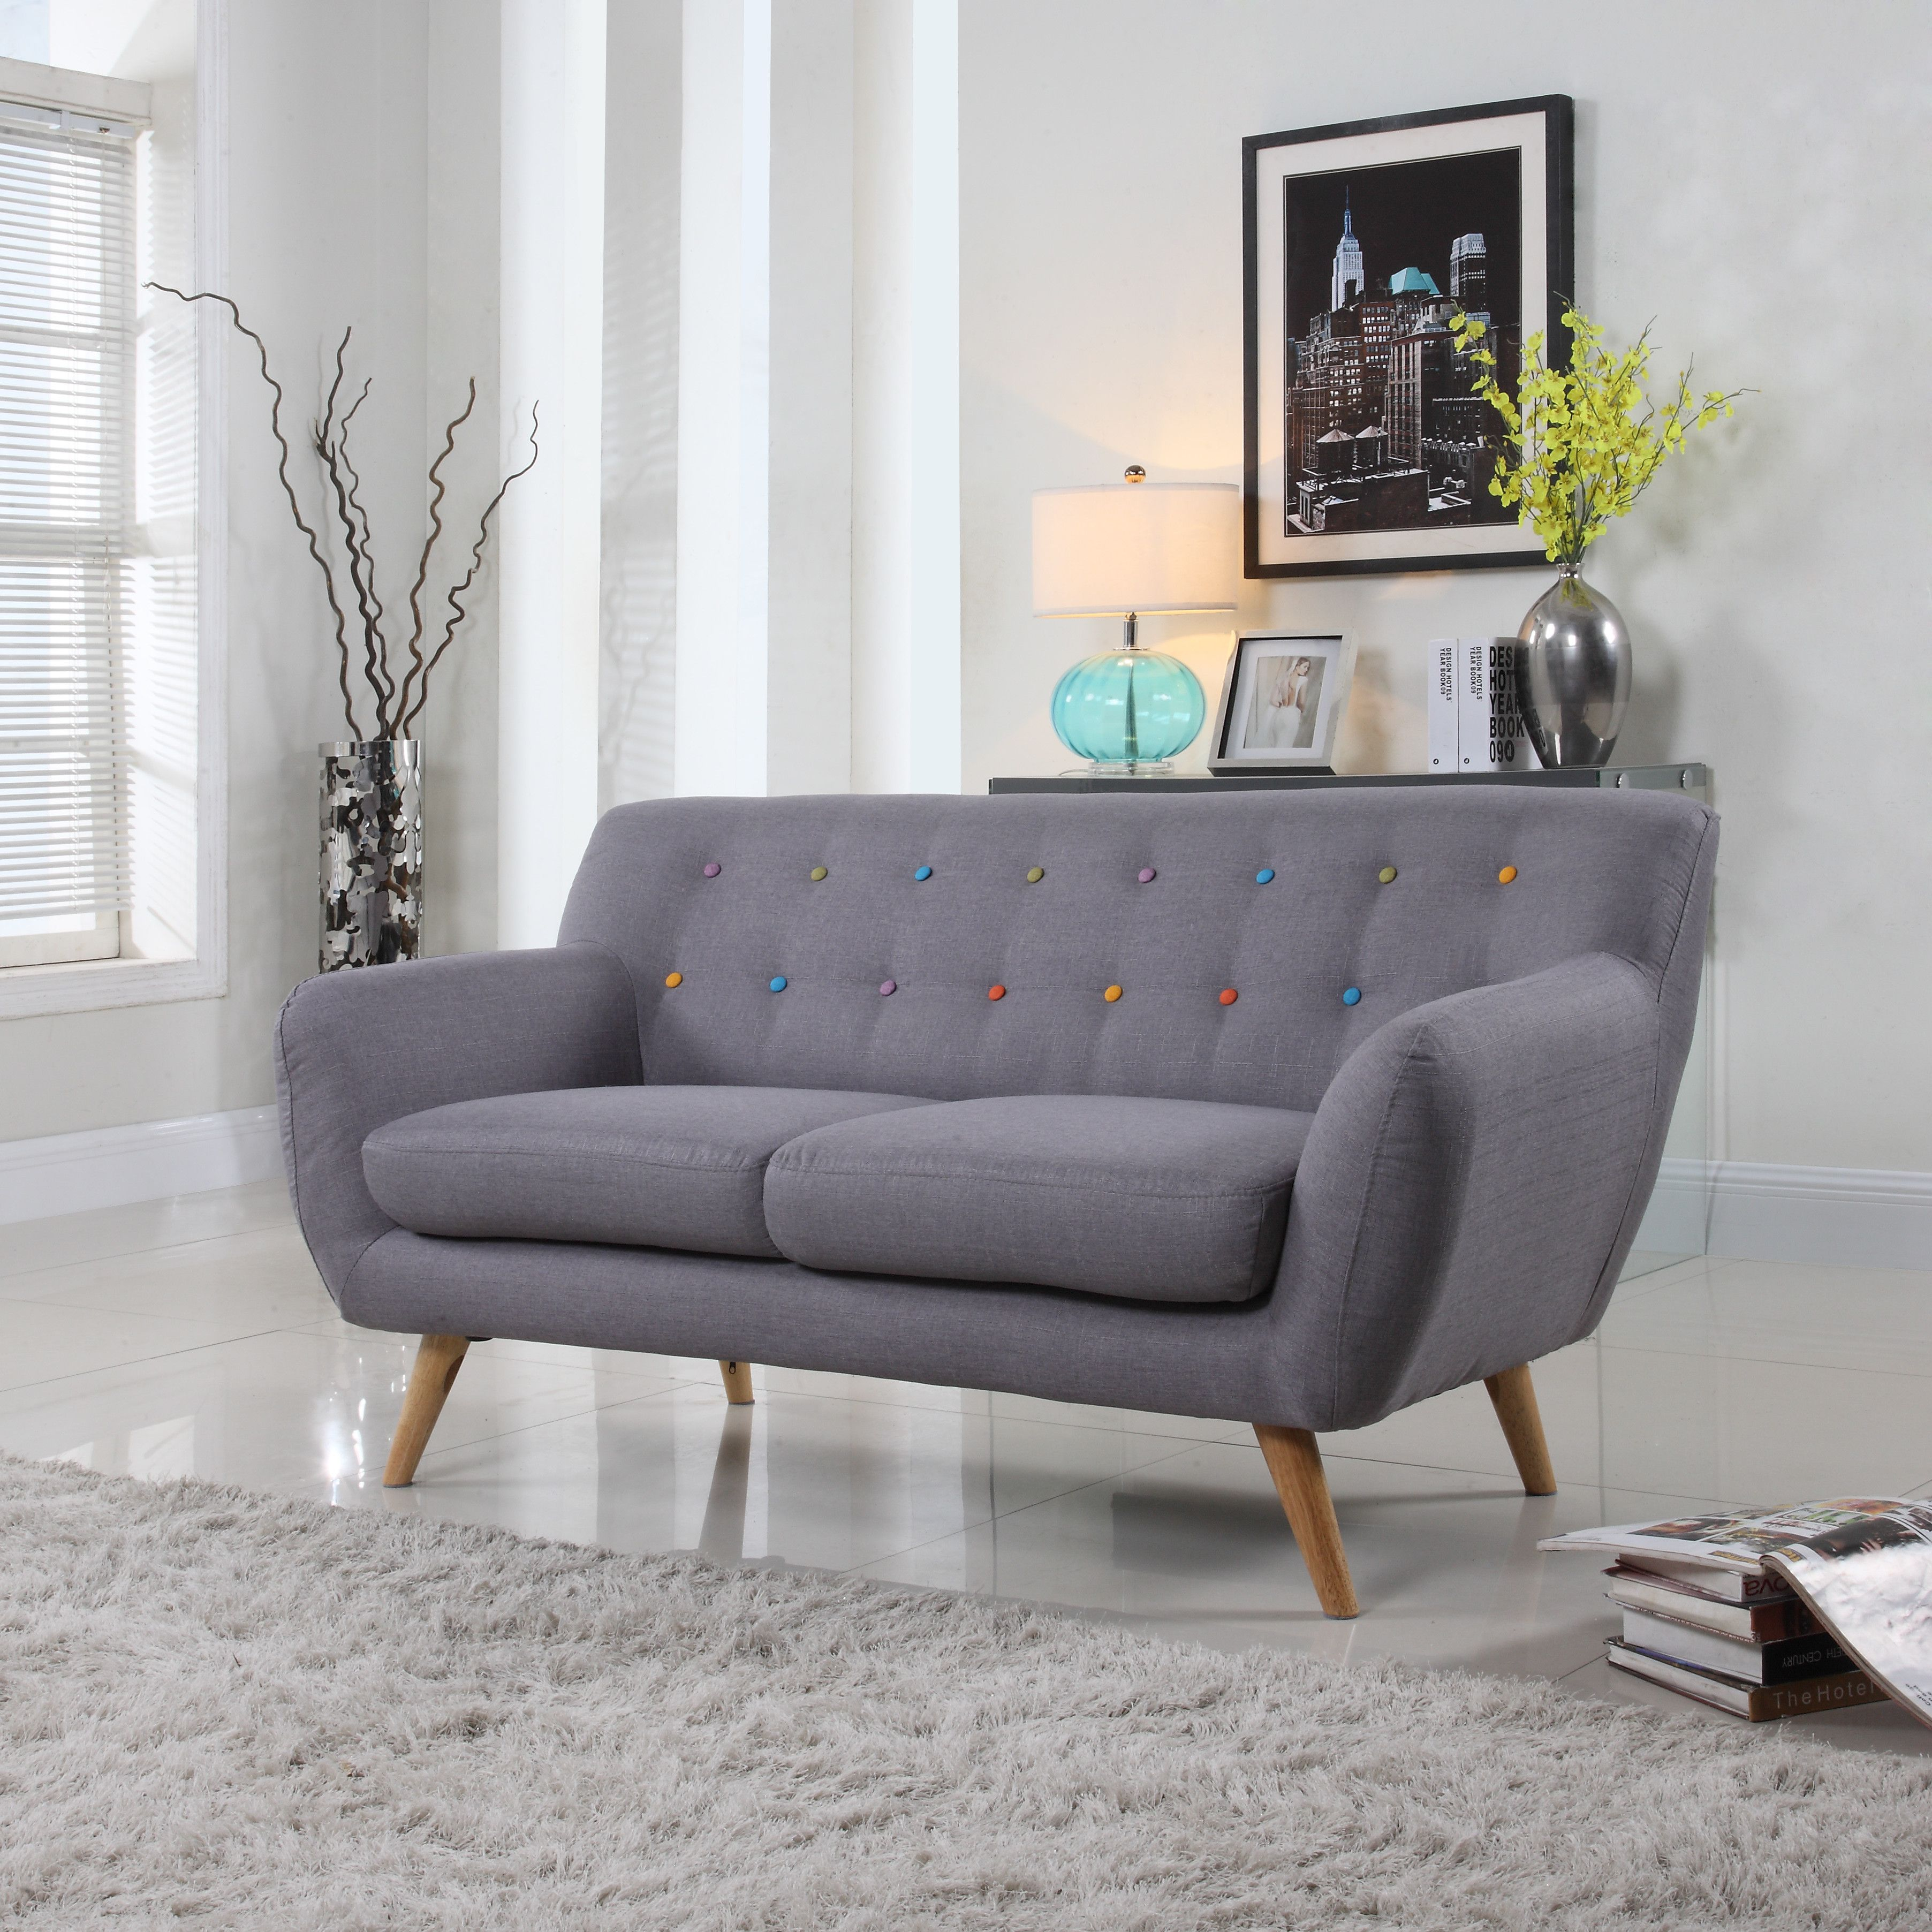 Shop Wayfair For Sofas To Match Every Style And Budget